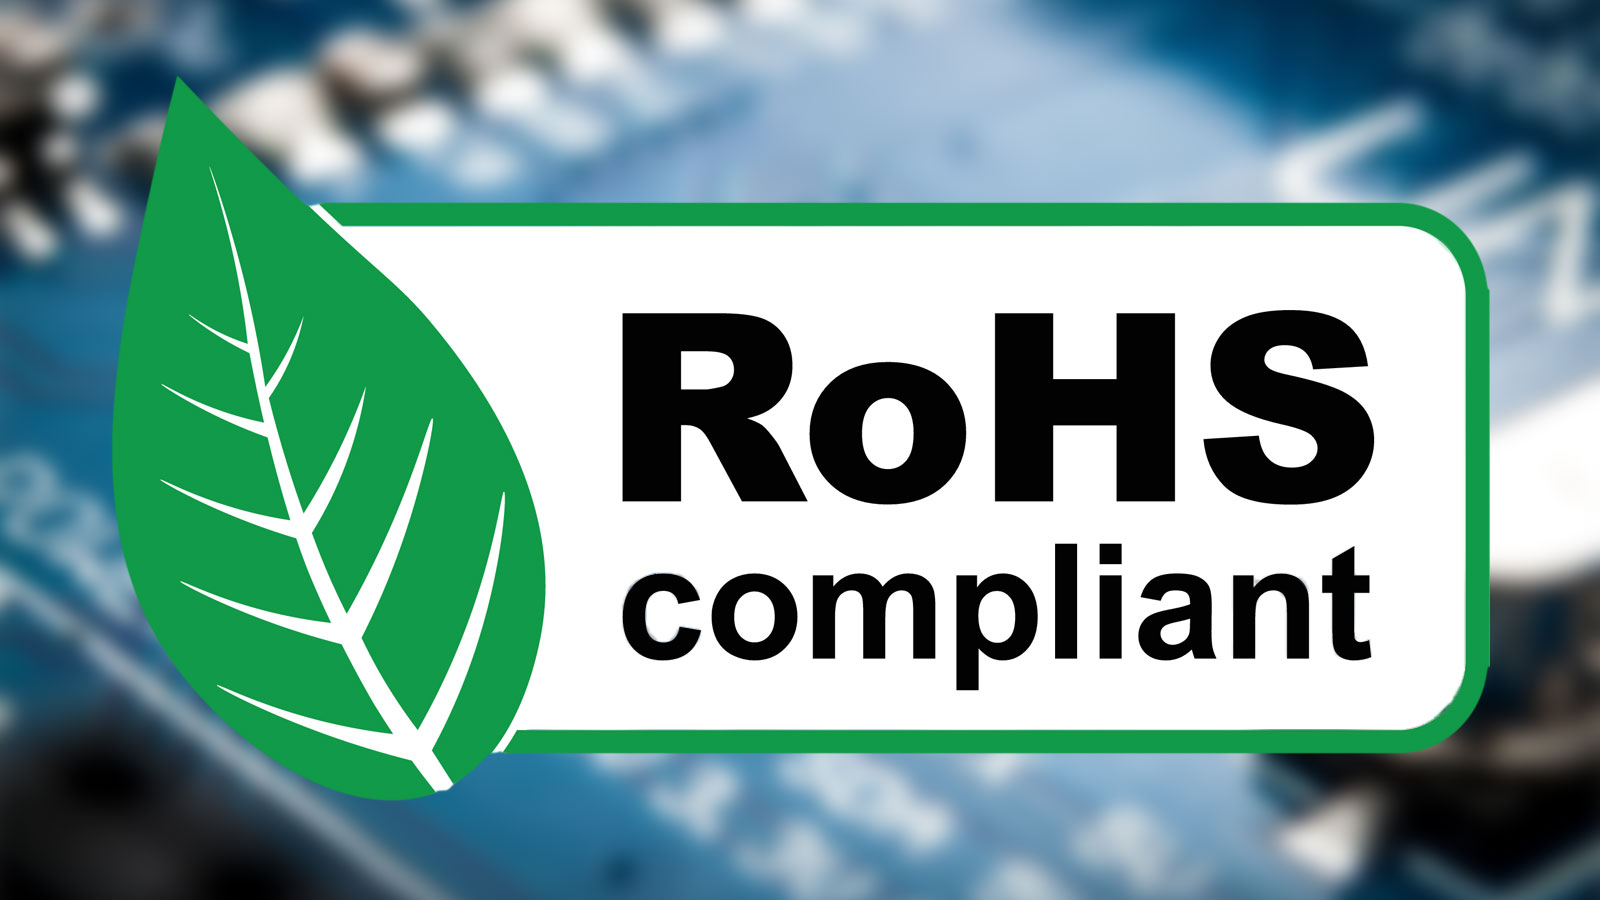 ROHS compliant sign with green leaf, vector illustration